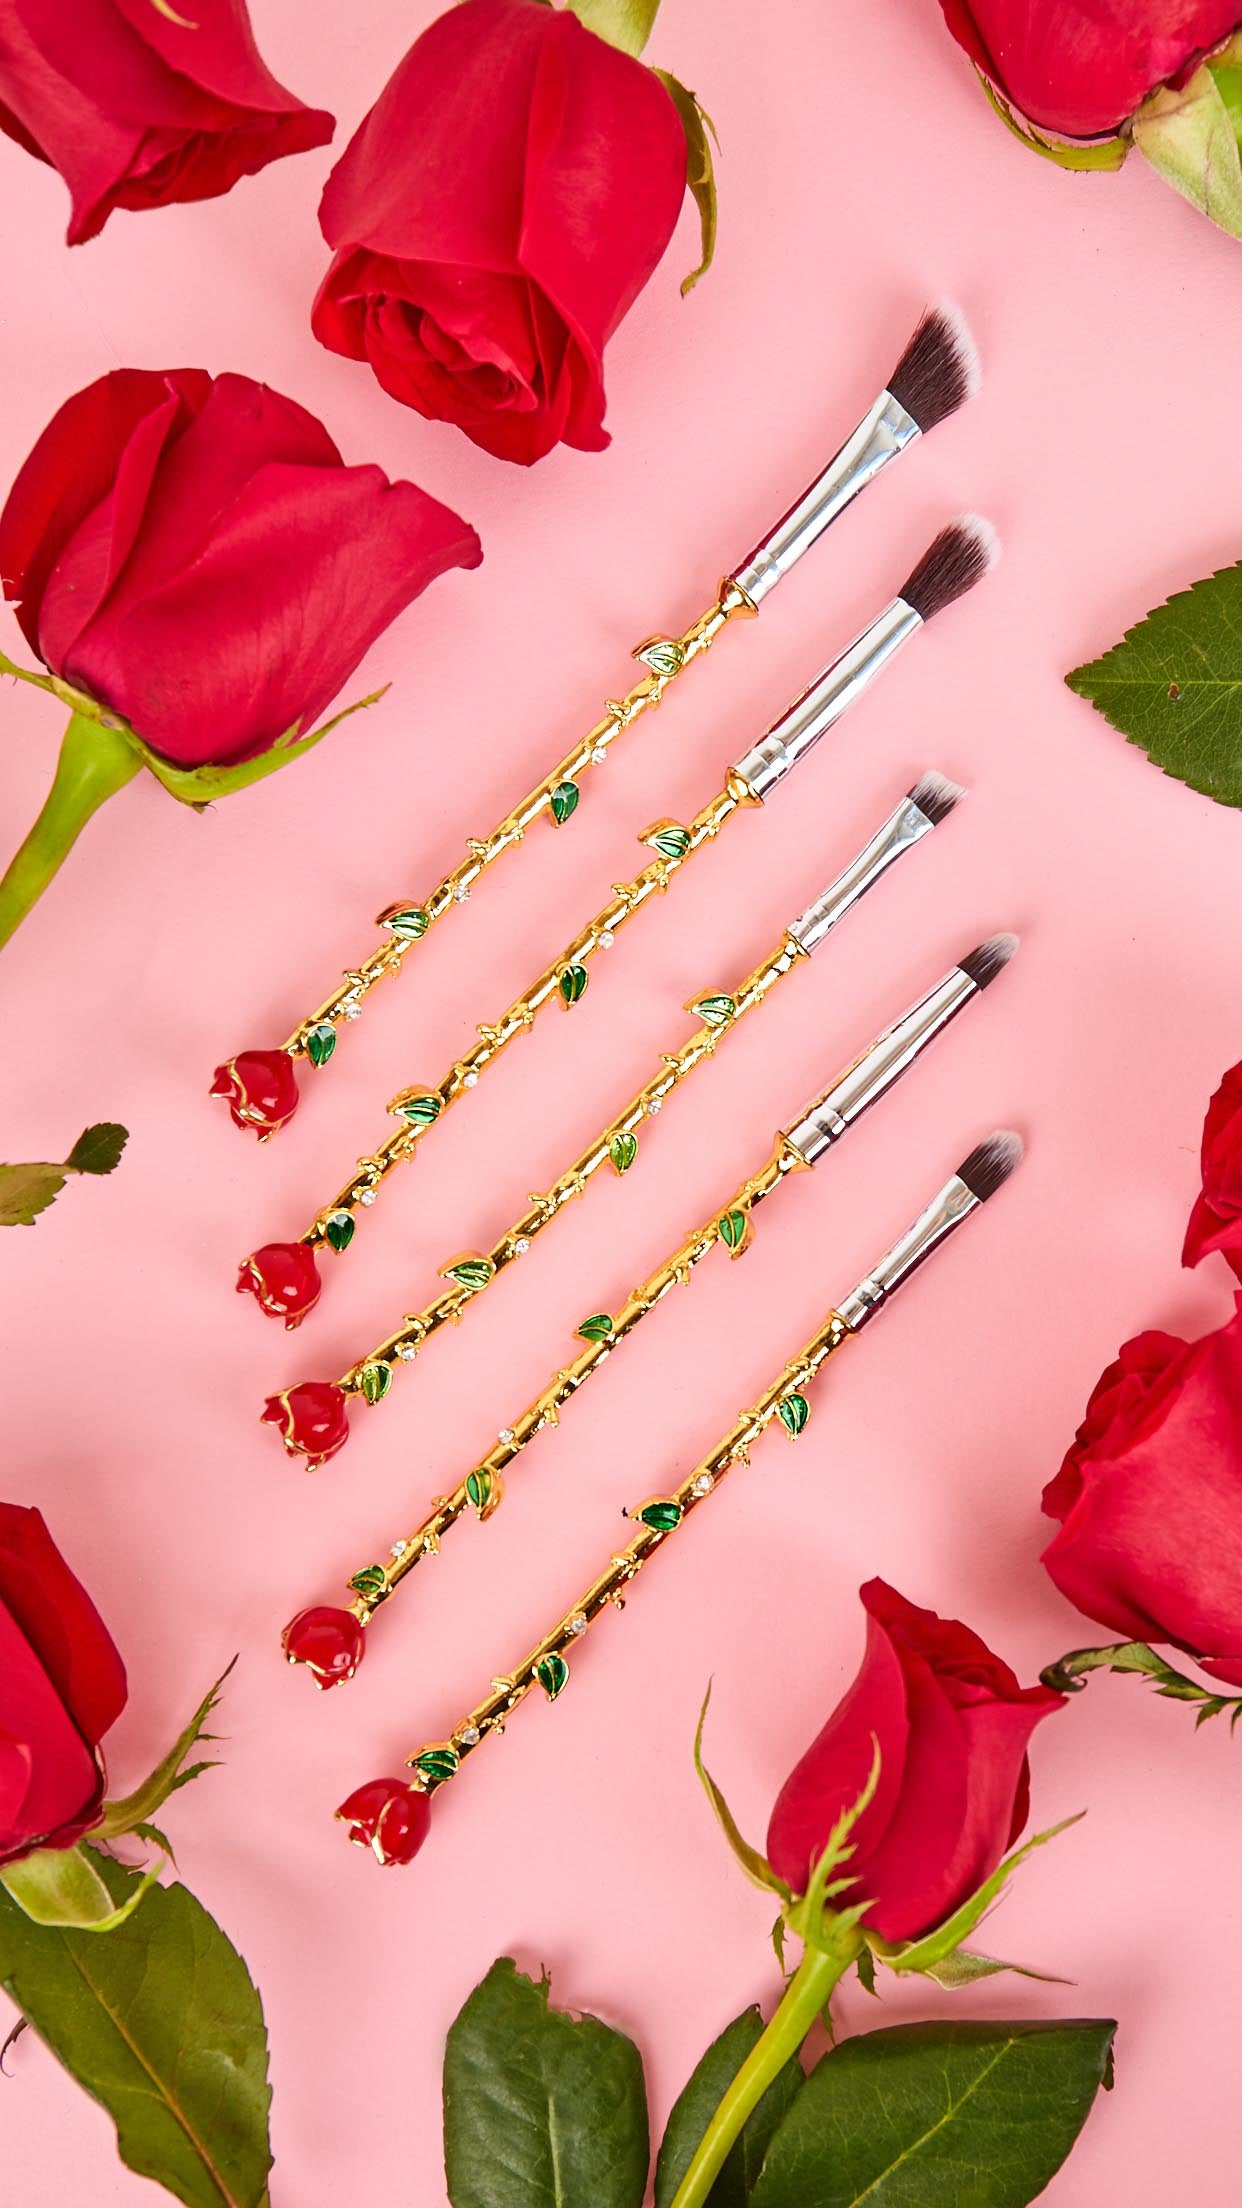 5-Piece Rose Stem Flower Brush Set